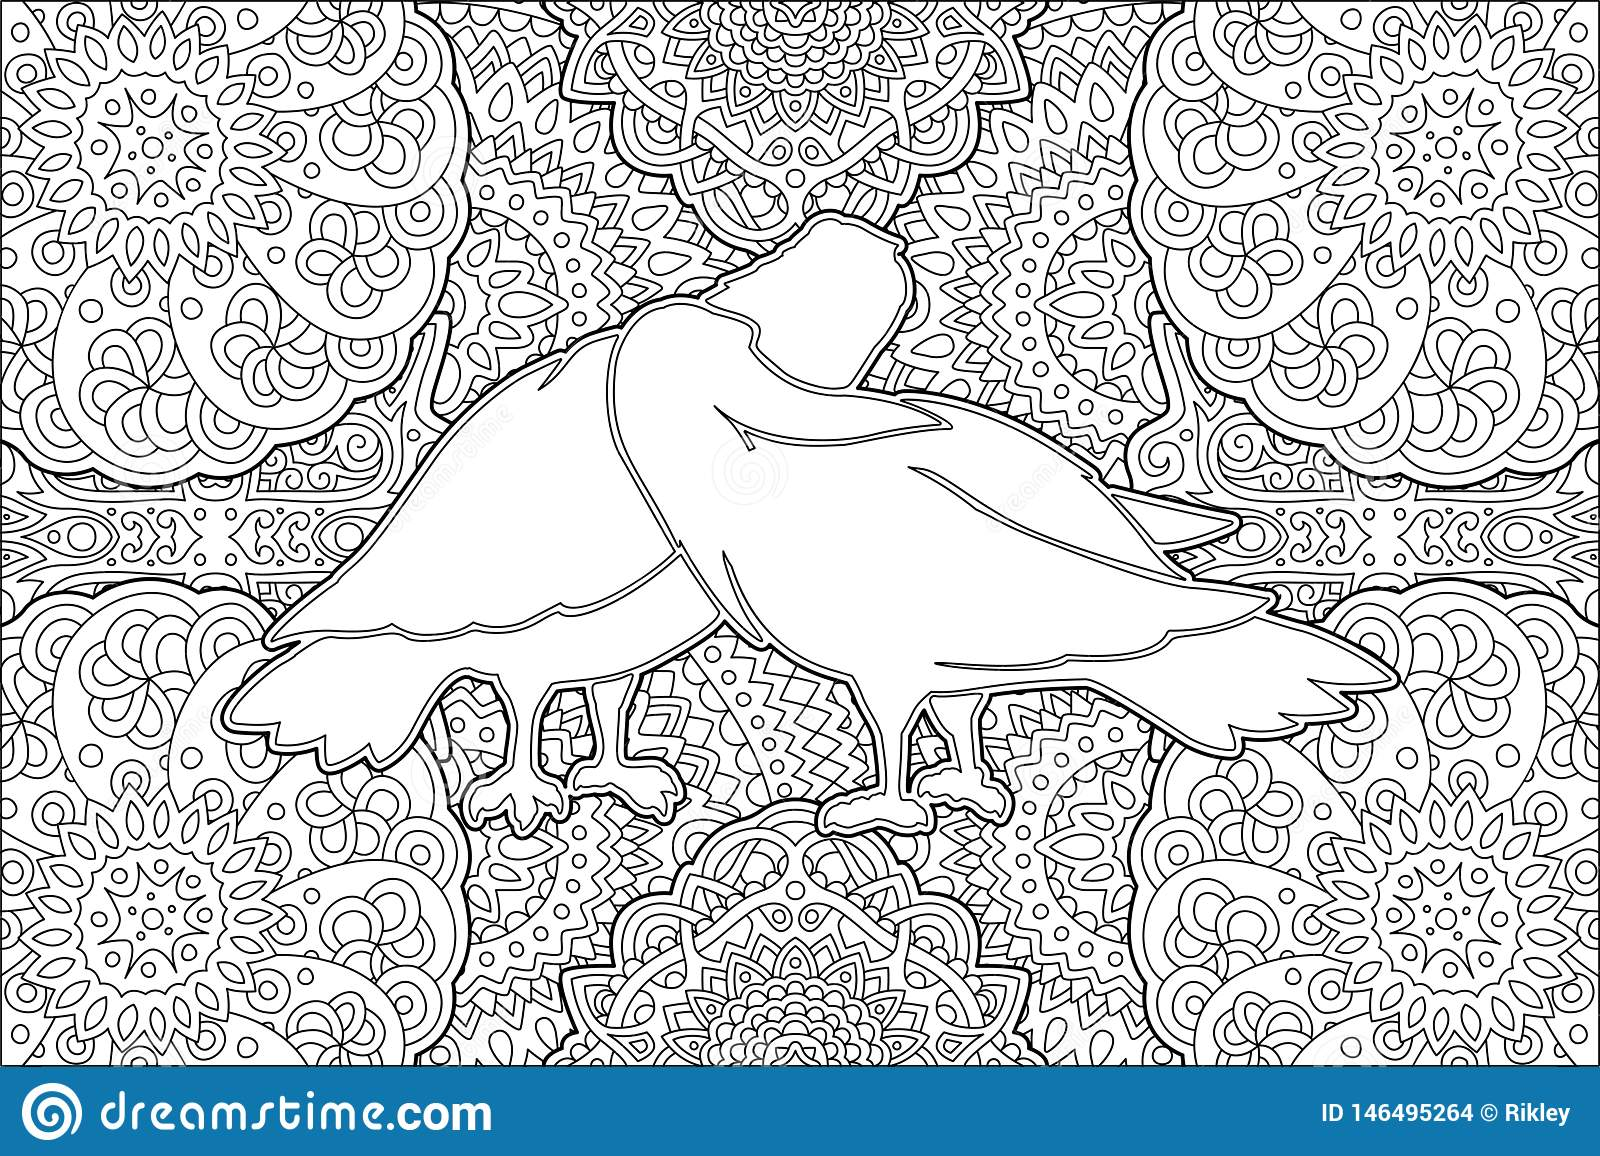 Coloring book page with two kissing white doves